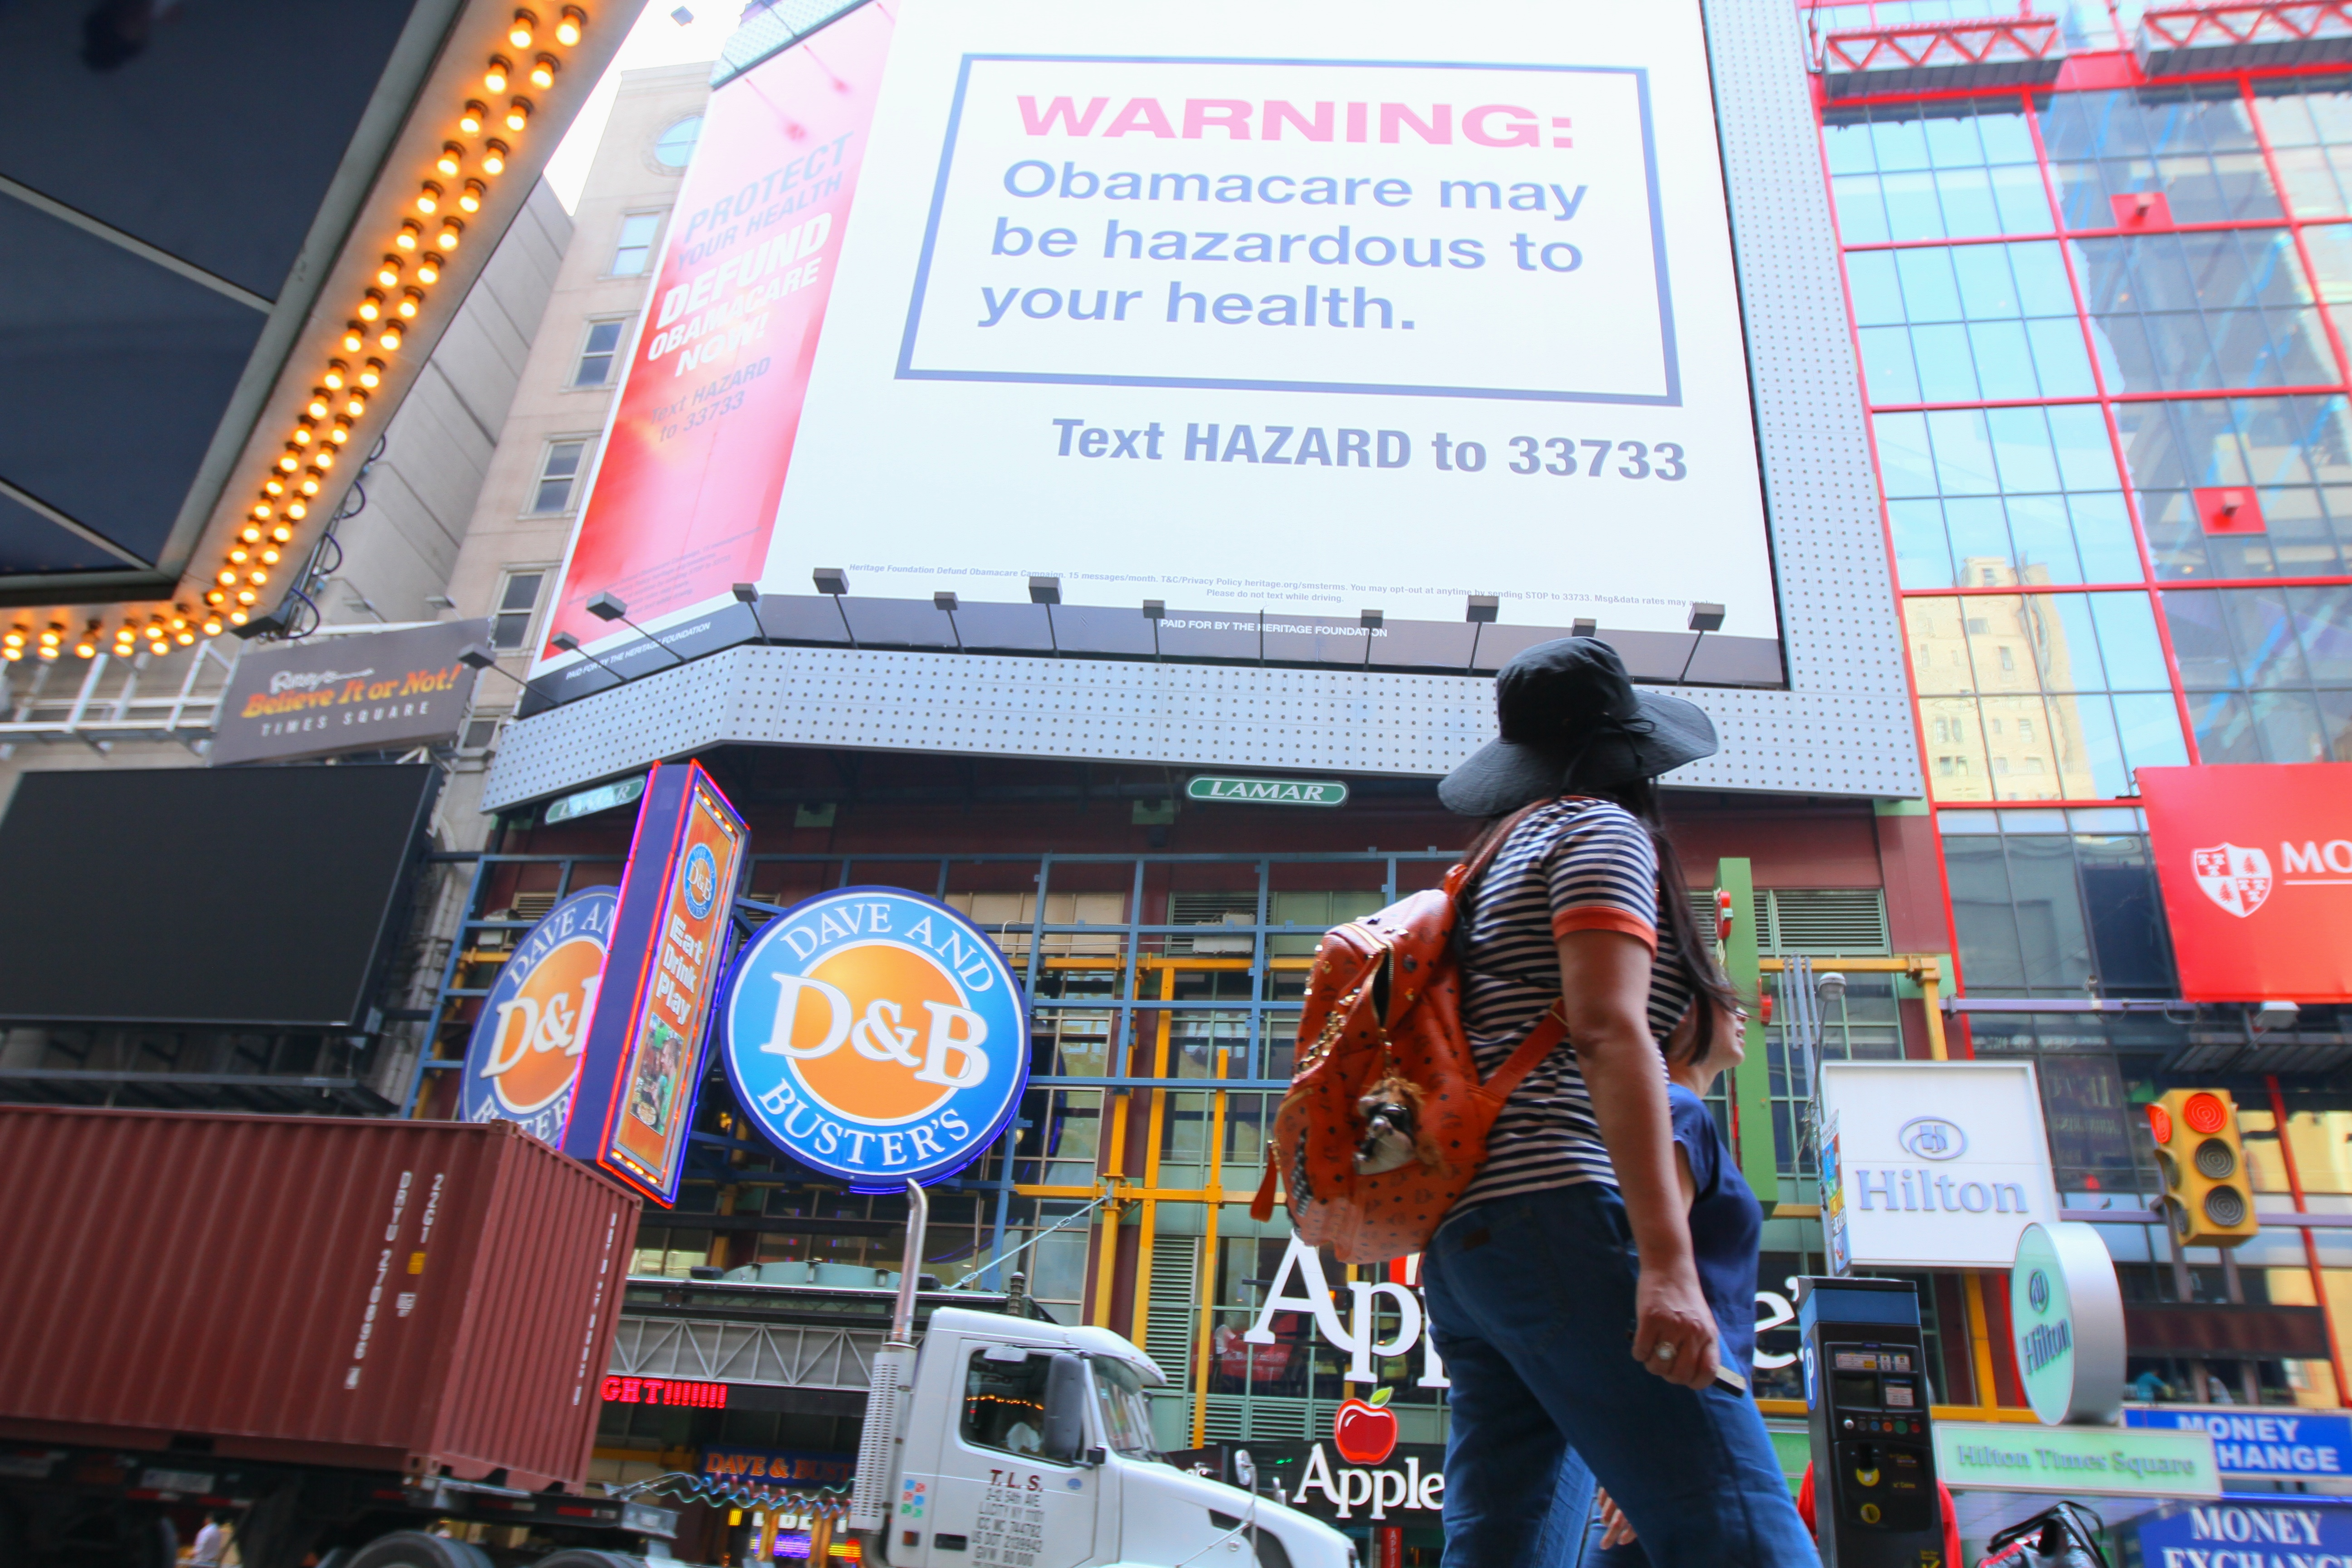 What Heritage's Obamacare Billboard in New York Looks Like